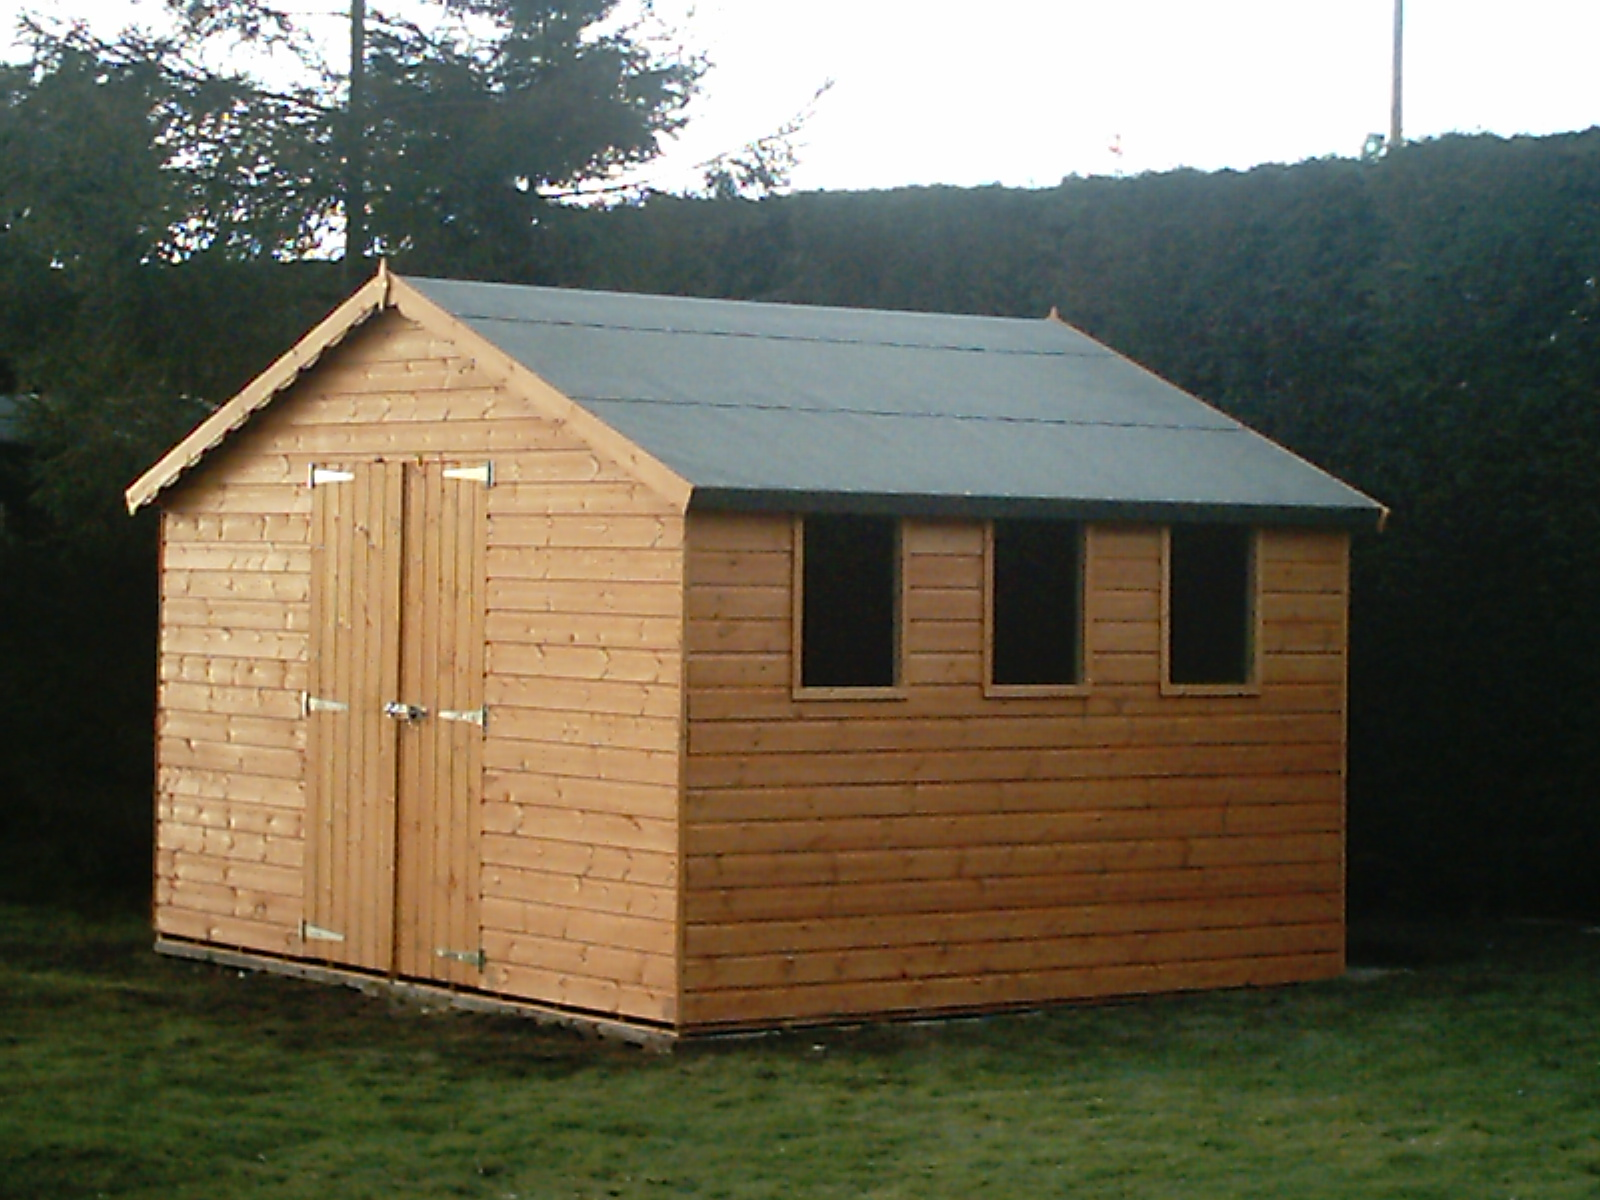 How To Build A Wooden Shed – Steps For Constructing A Shed | Shed ...